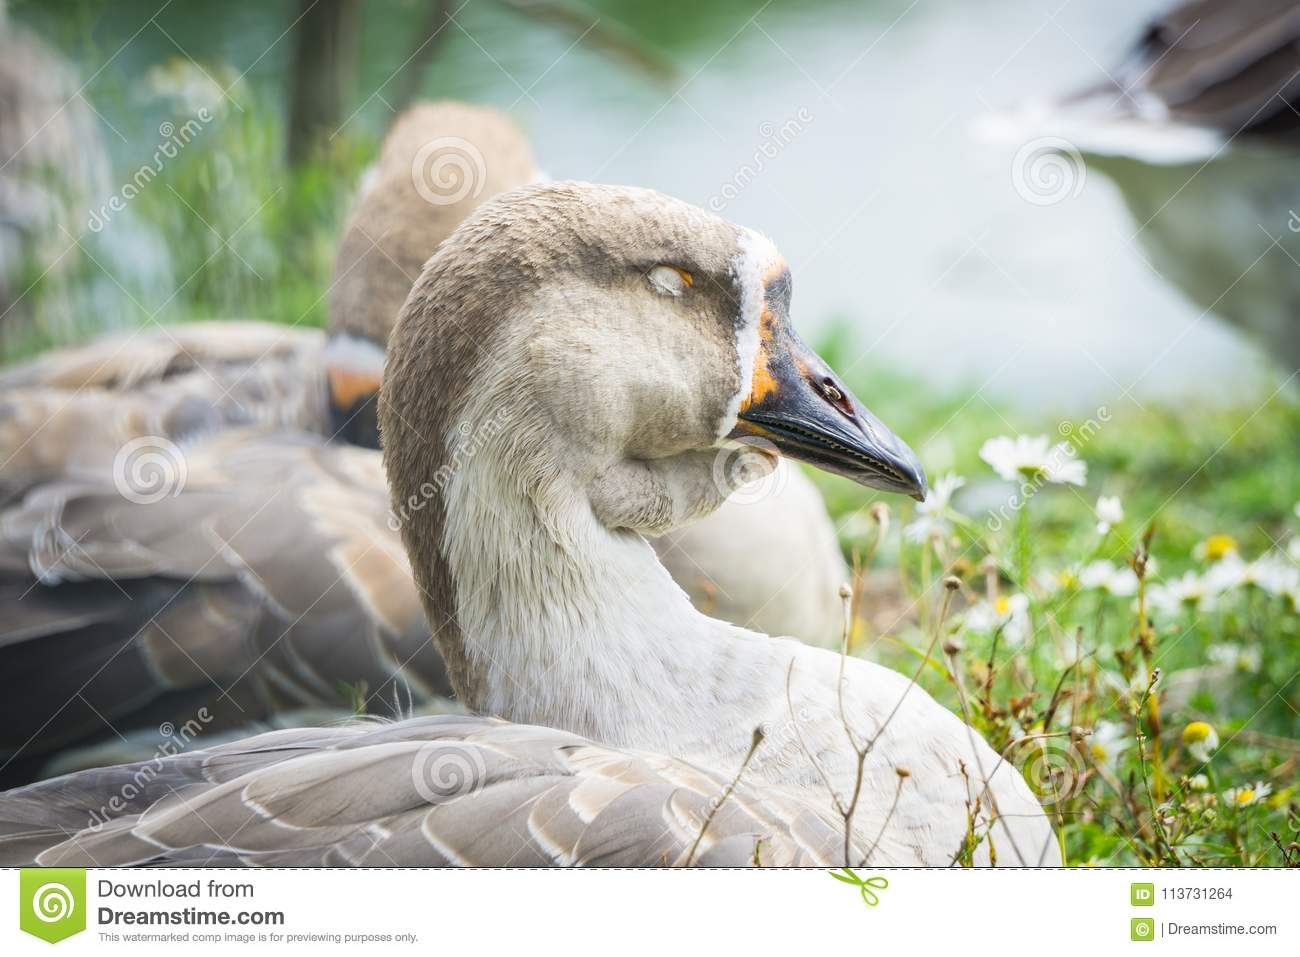 Goose walking and sitting on the grass in a zoo near a pond in w